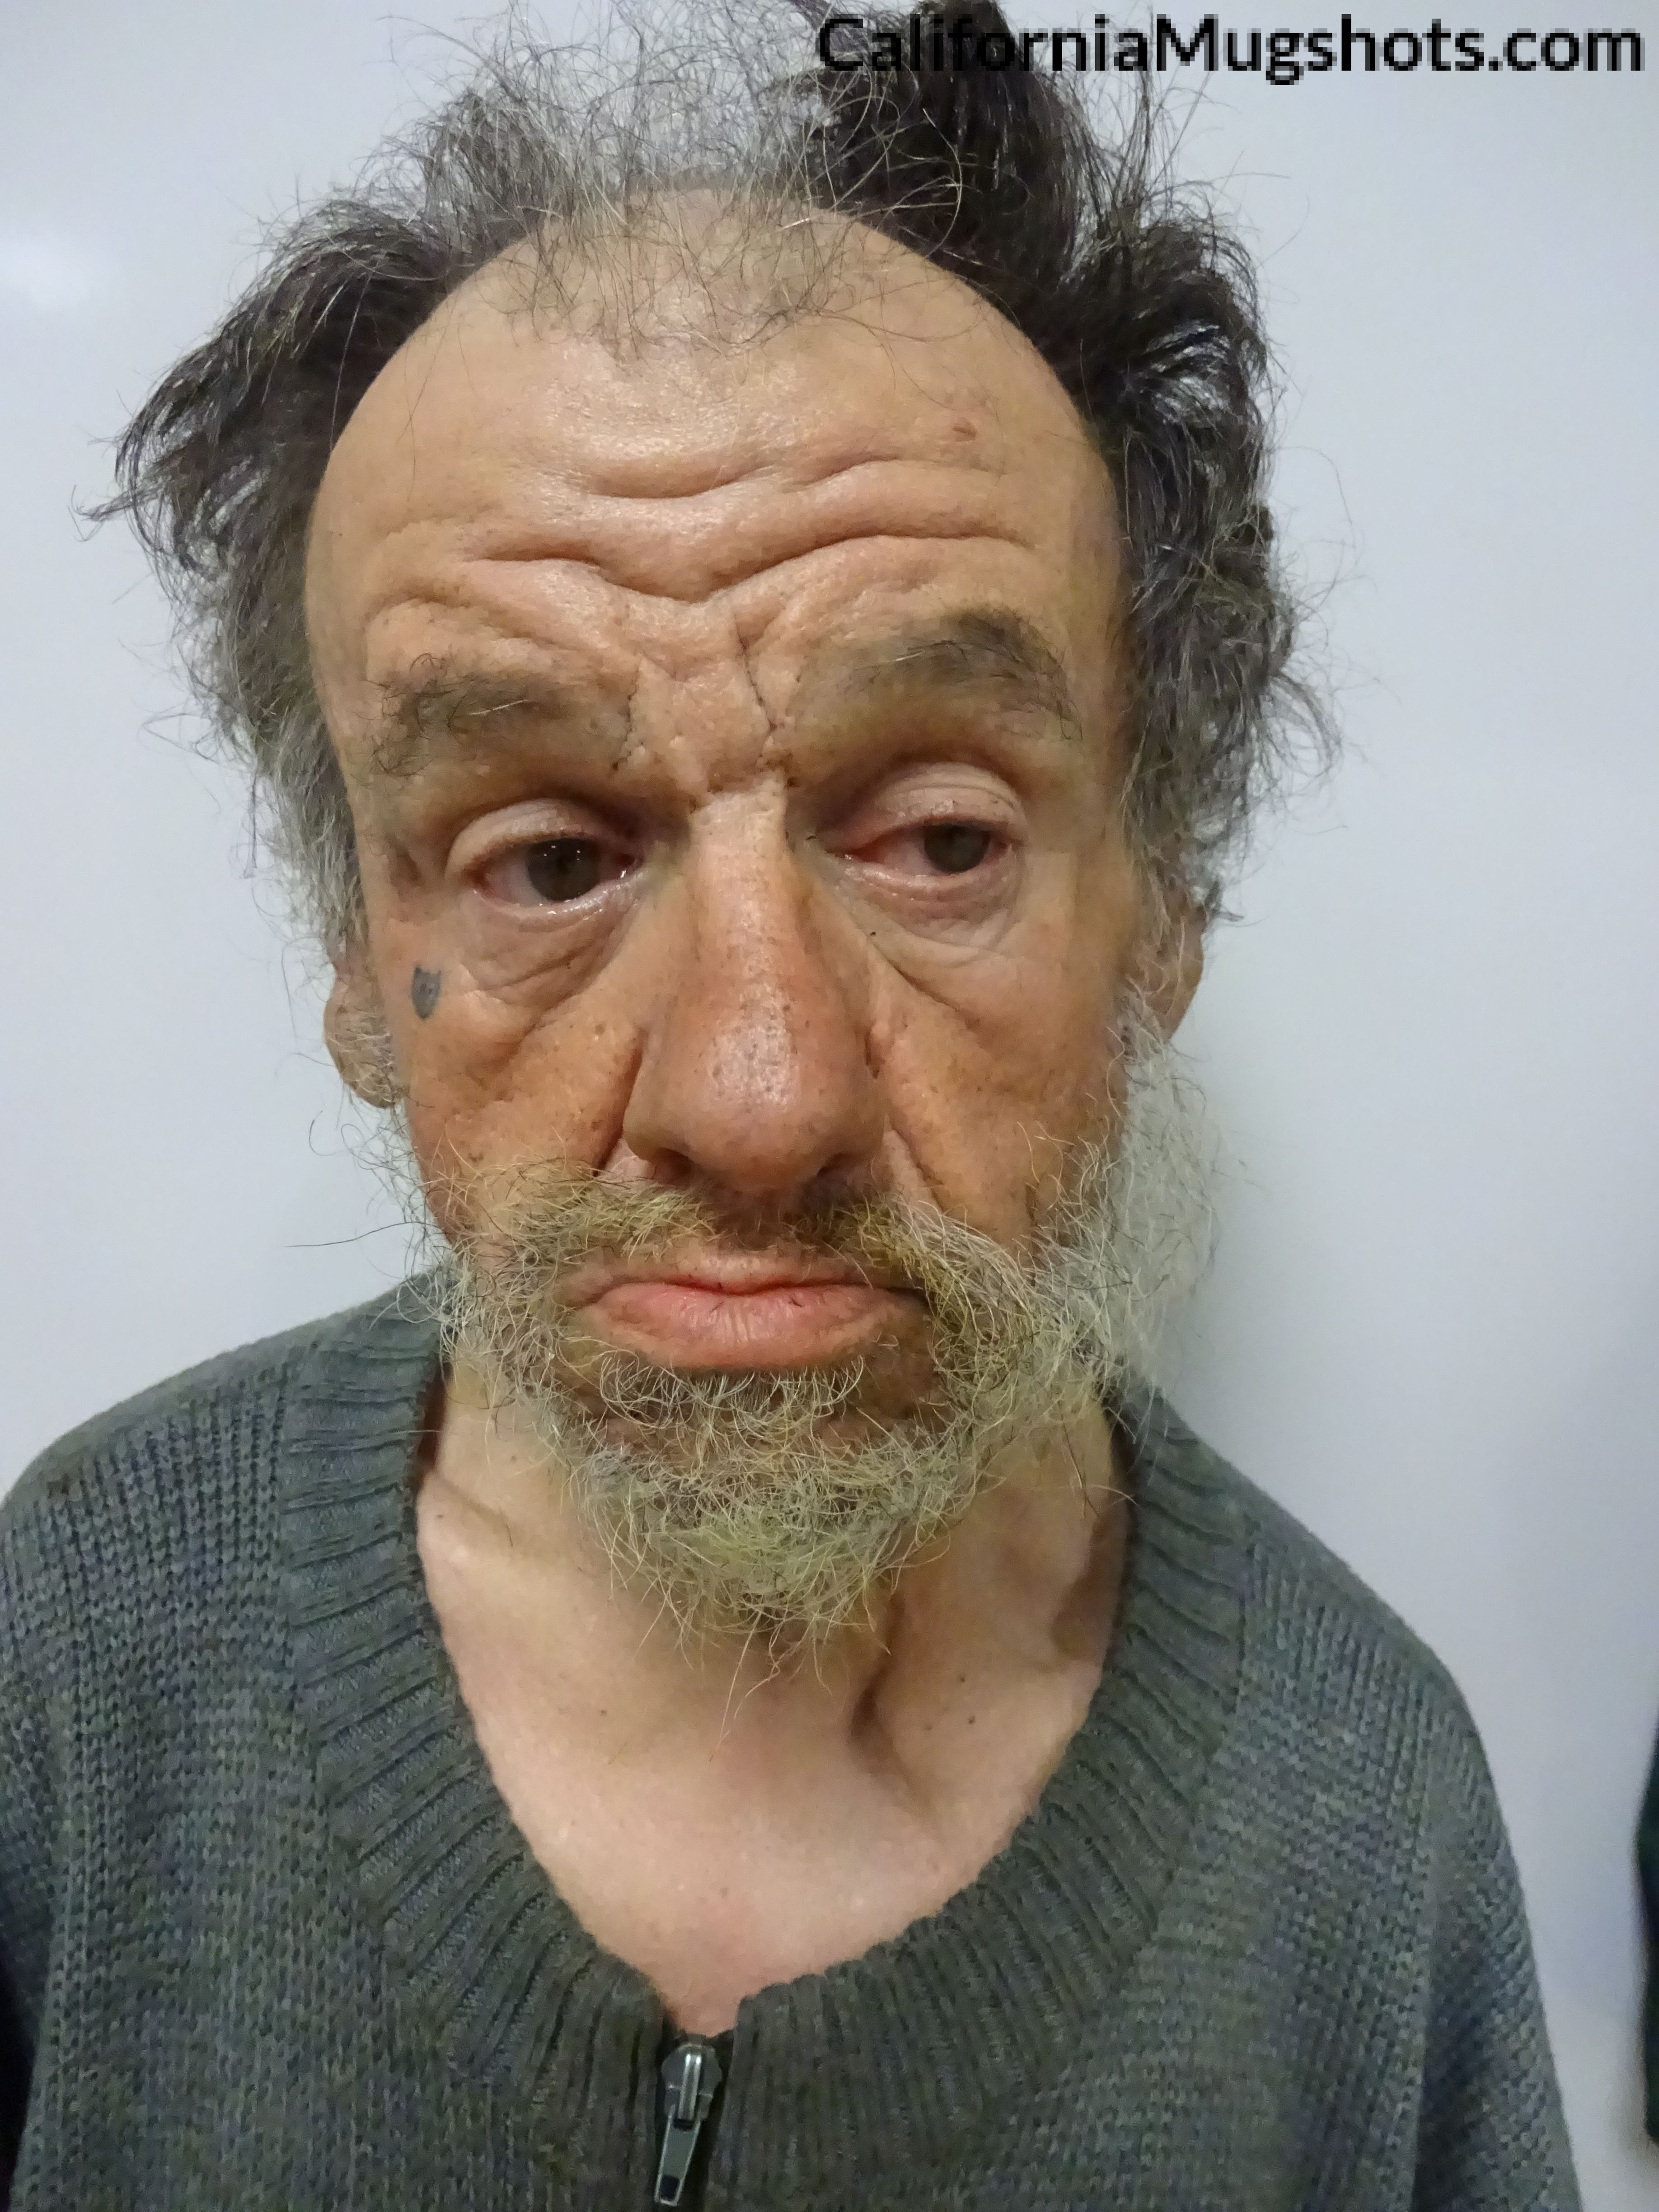 Arrest Photo of Kevin Lee Betts